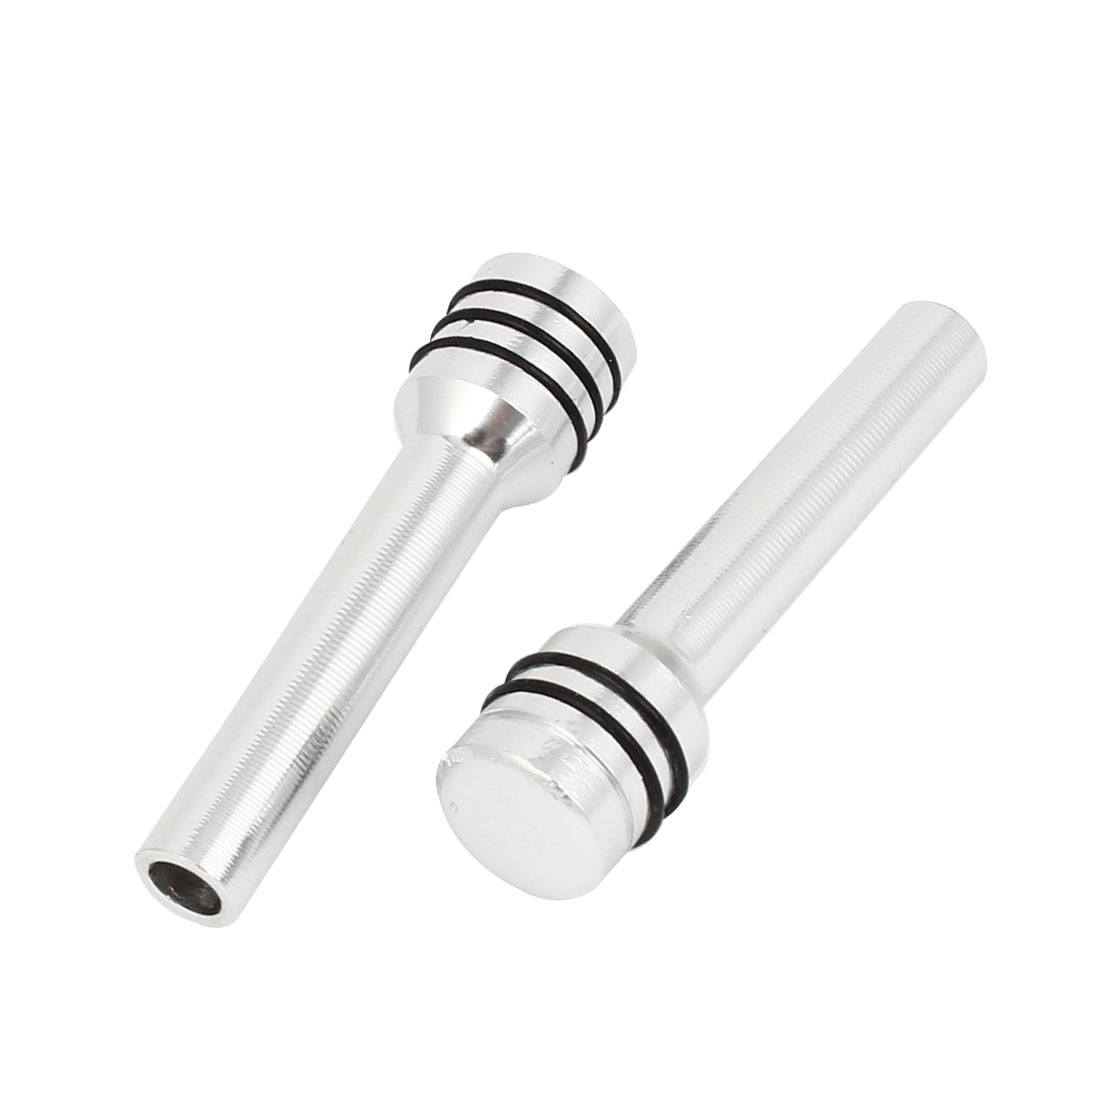 Vehicle Car Truck Aluminum Alloy Interior Door Lock Knobs Silver Tone 2 Pcs